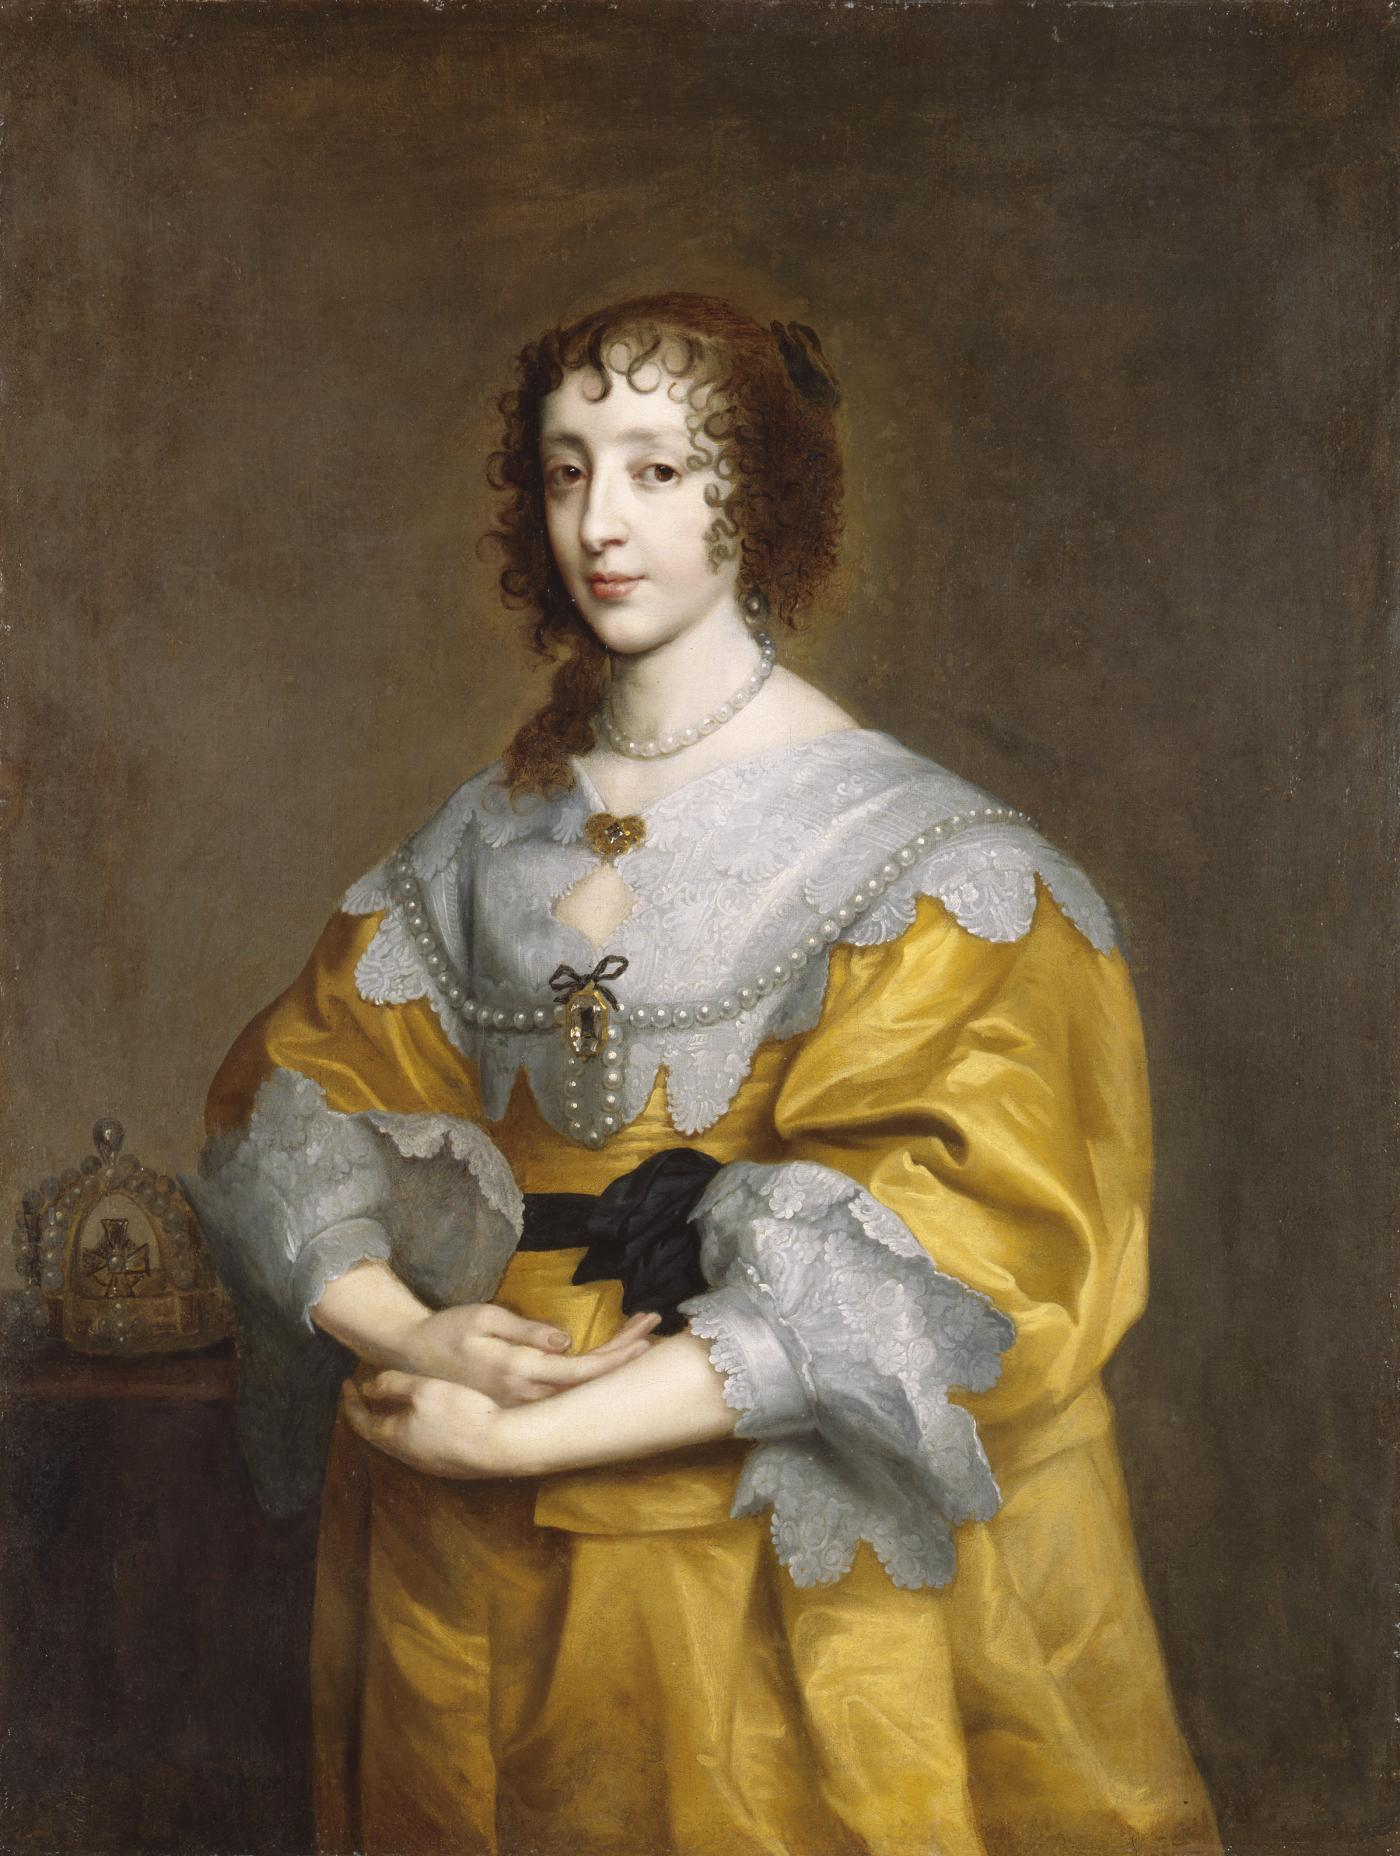 An image showing 'Henrietta Maria, after Sir Anthony Van Dyck, 17th century, based on a work of about 1632-35'